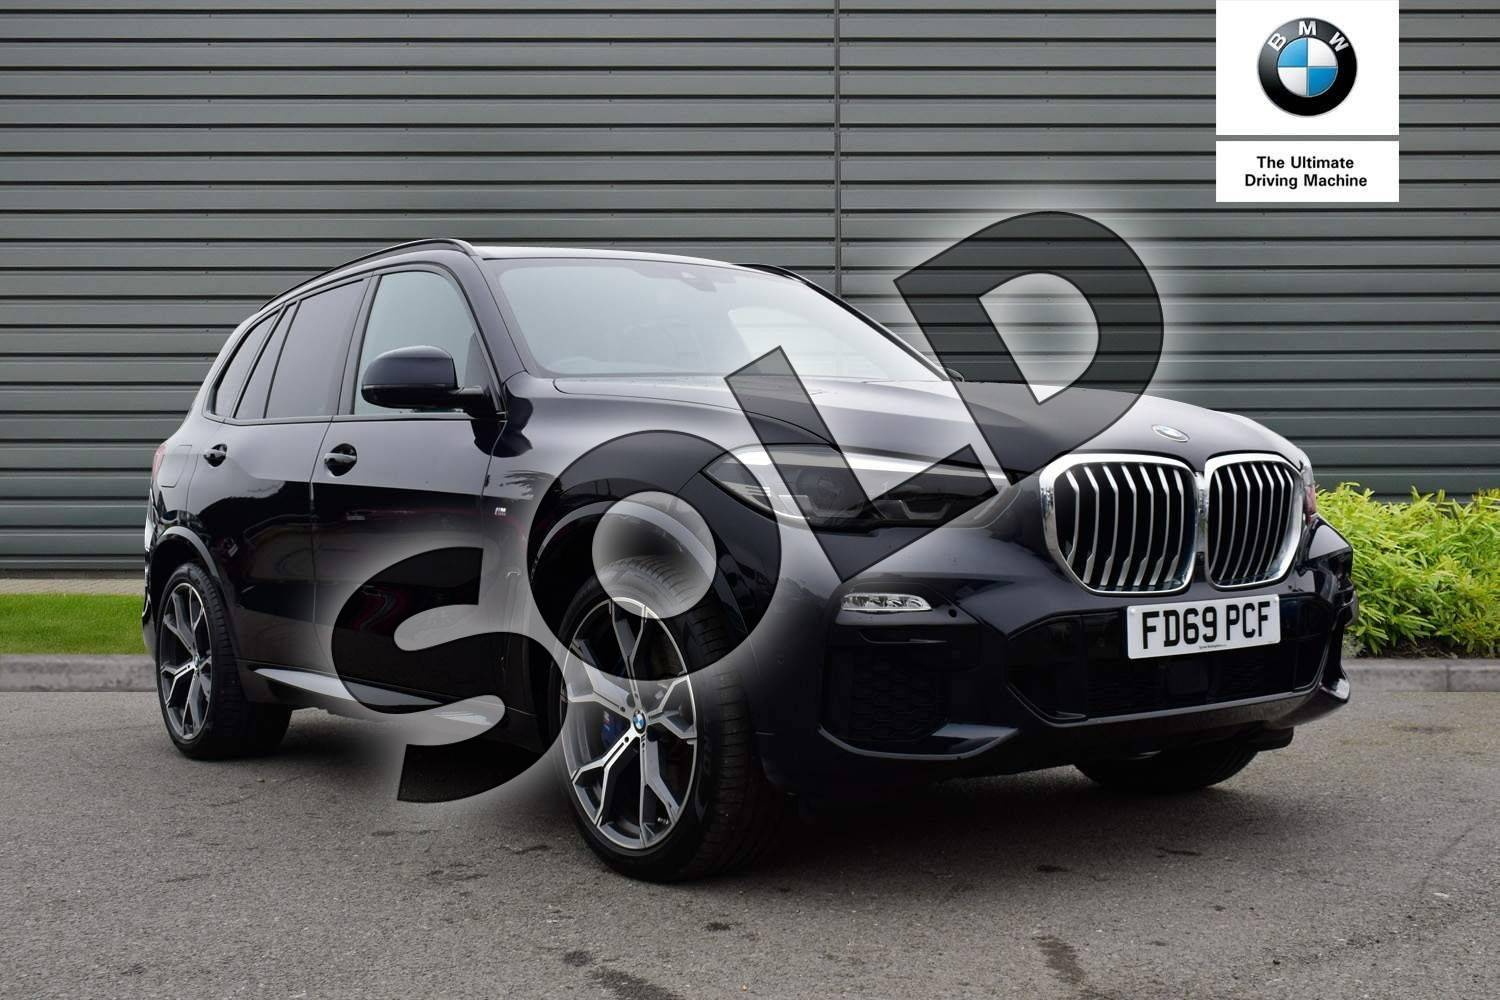 2020 BMW X5 Estate xDrive45e M Sport 5dr Auto in Carbon Black at Listers Boston (BMW)